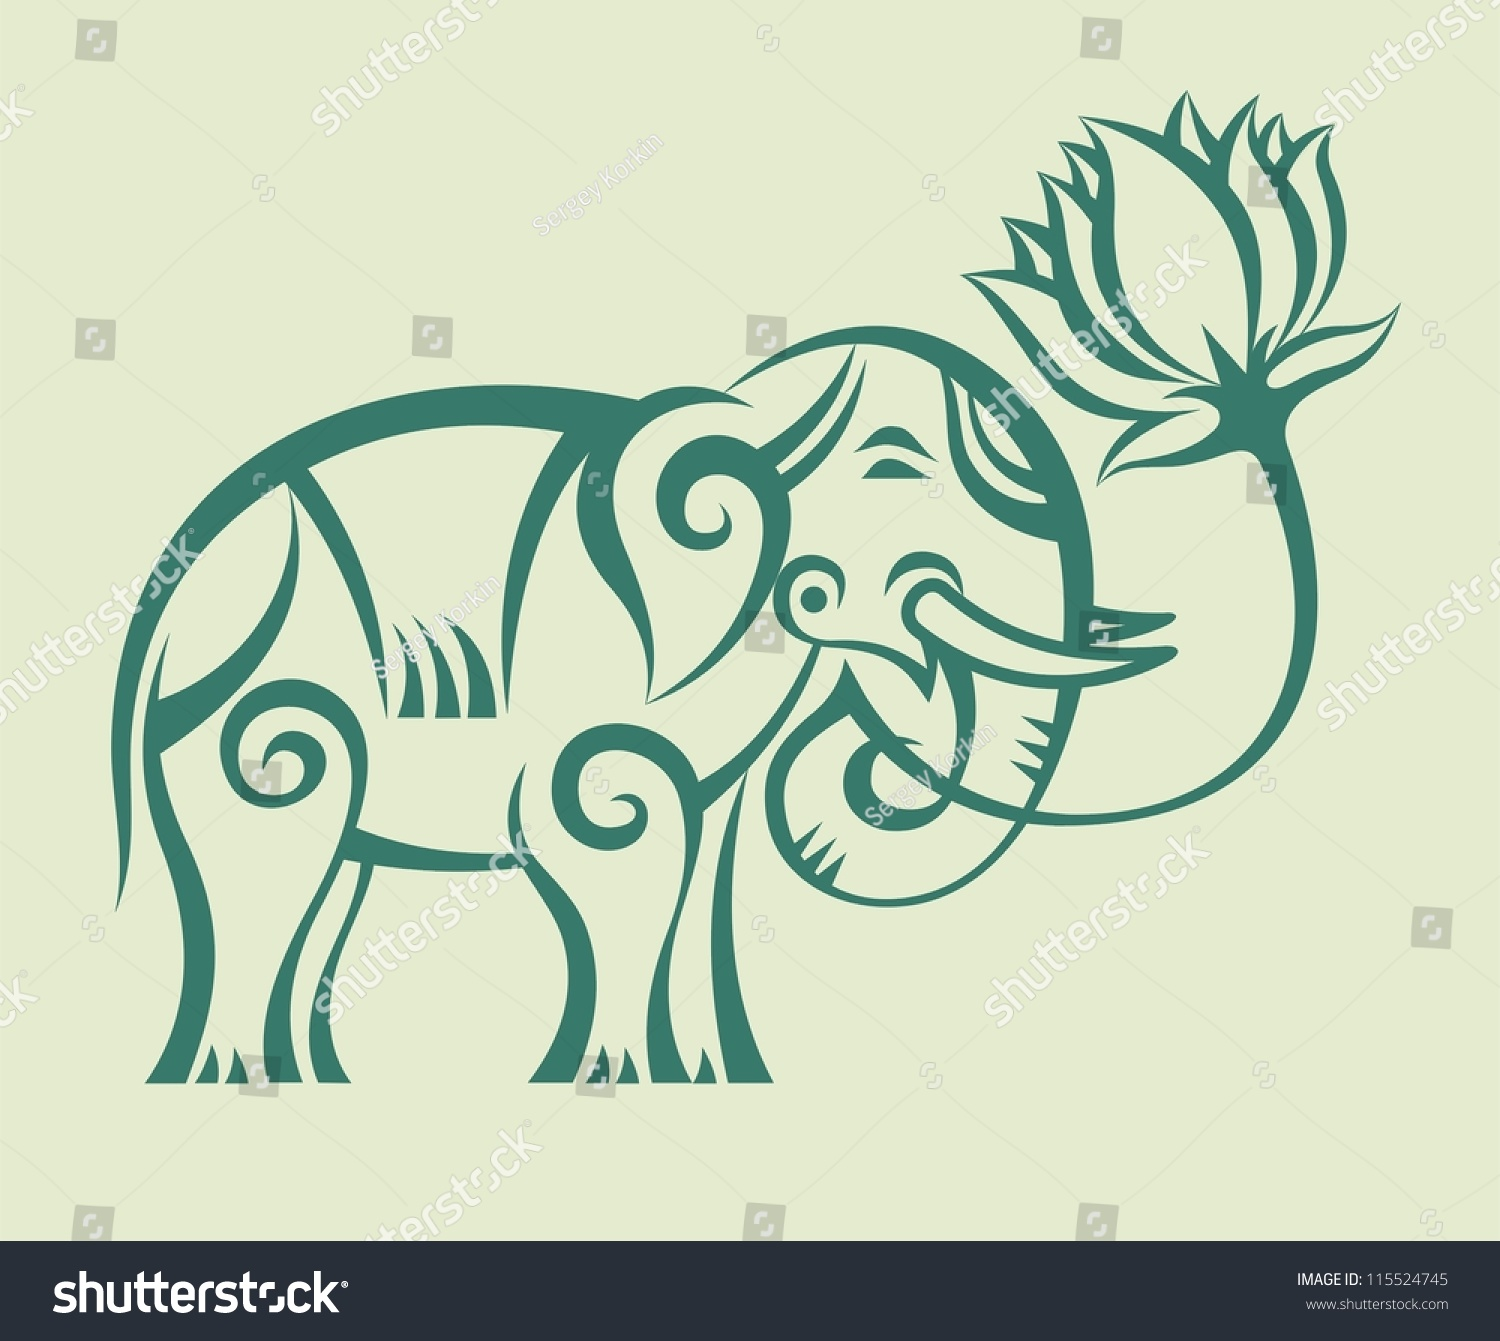 Elephant Lotus Flower Concept Illustration Stock Illustration